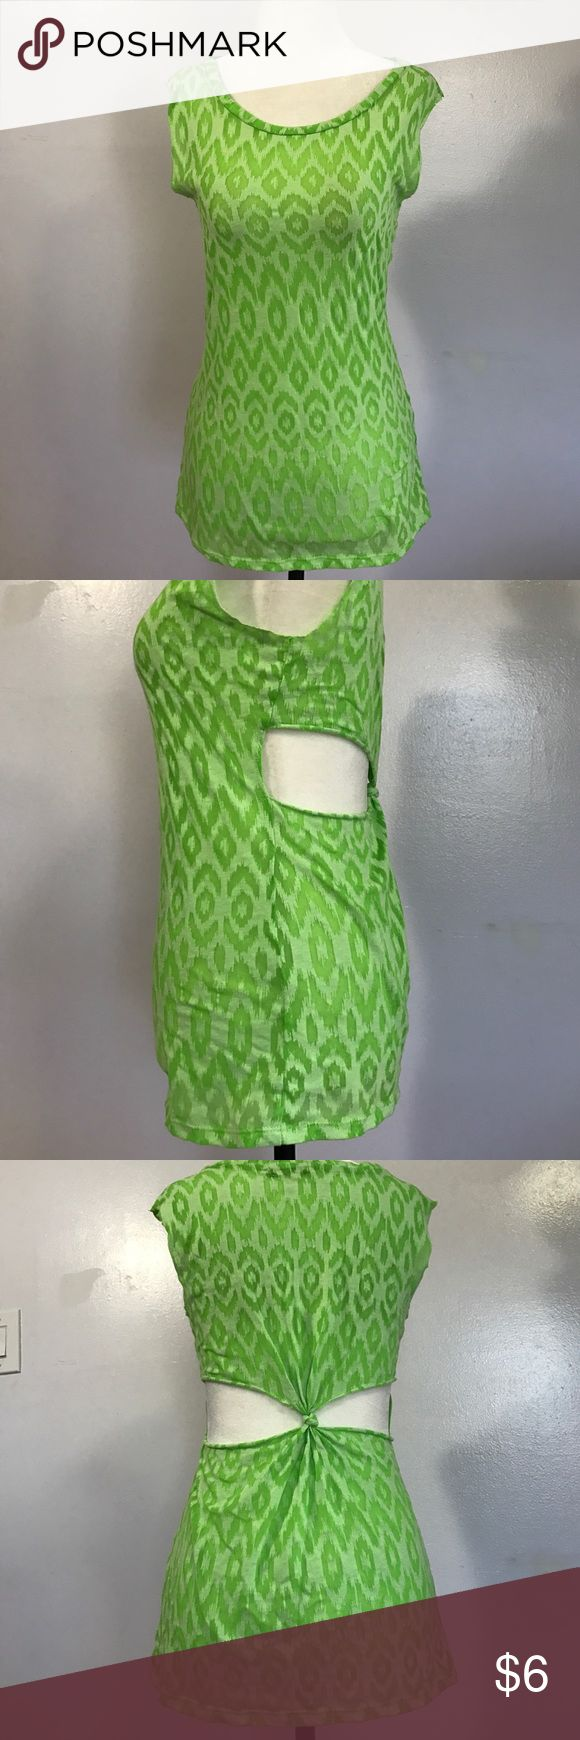 Deb Cut-Out Tank Top- Med Super cute lime green Burnout patterned top with cut out knotted back! Excellent condition 💚 Deb Tops Tank Tops